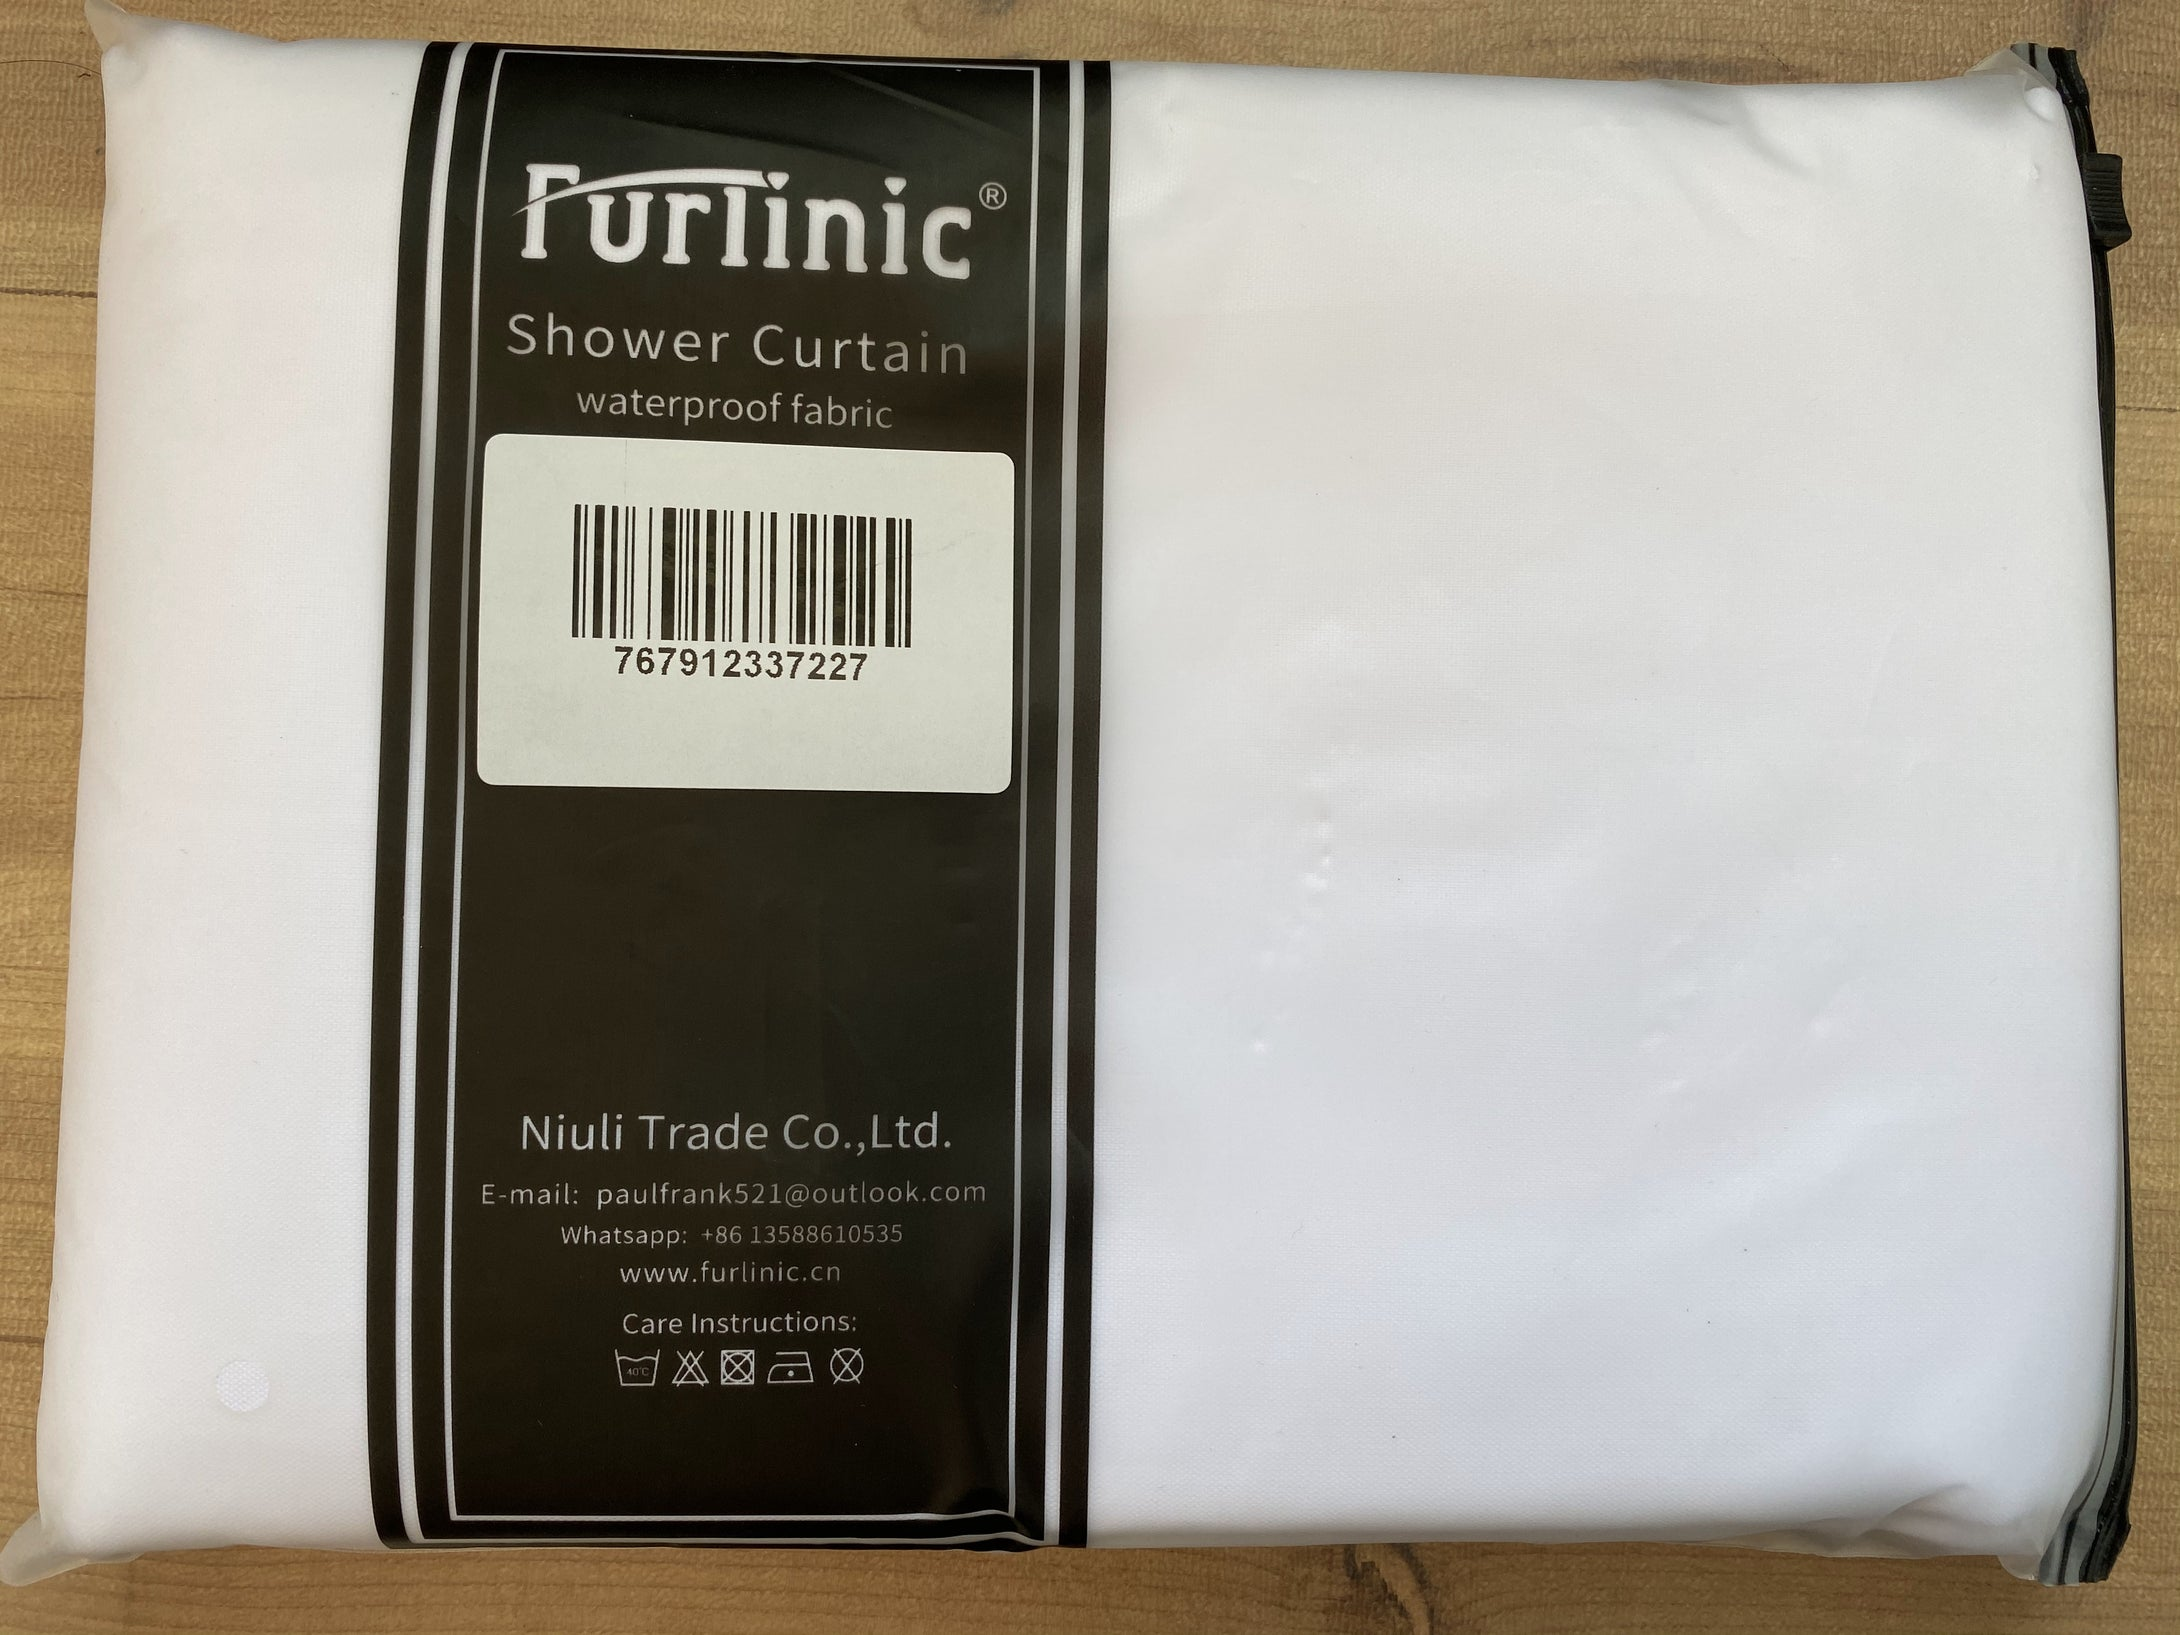 Furlinic White Fabric Shower Curtain Extra Long,Smooth Dustproof Material Curtains for Shower with 12 Plastic Hooks-78